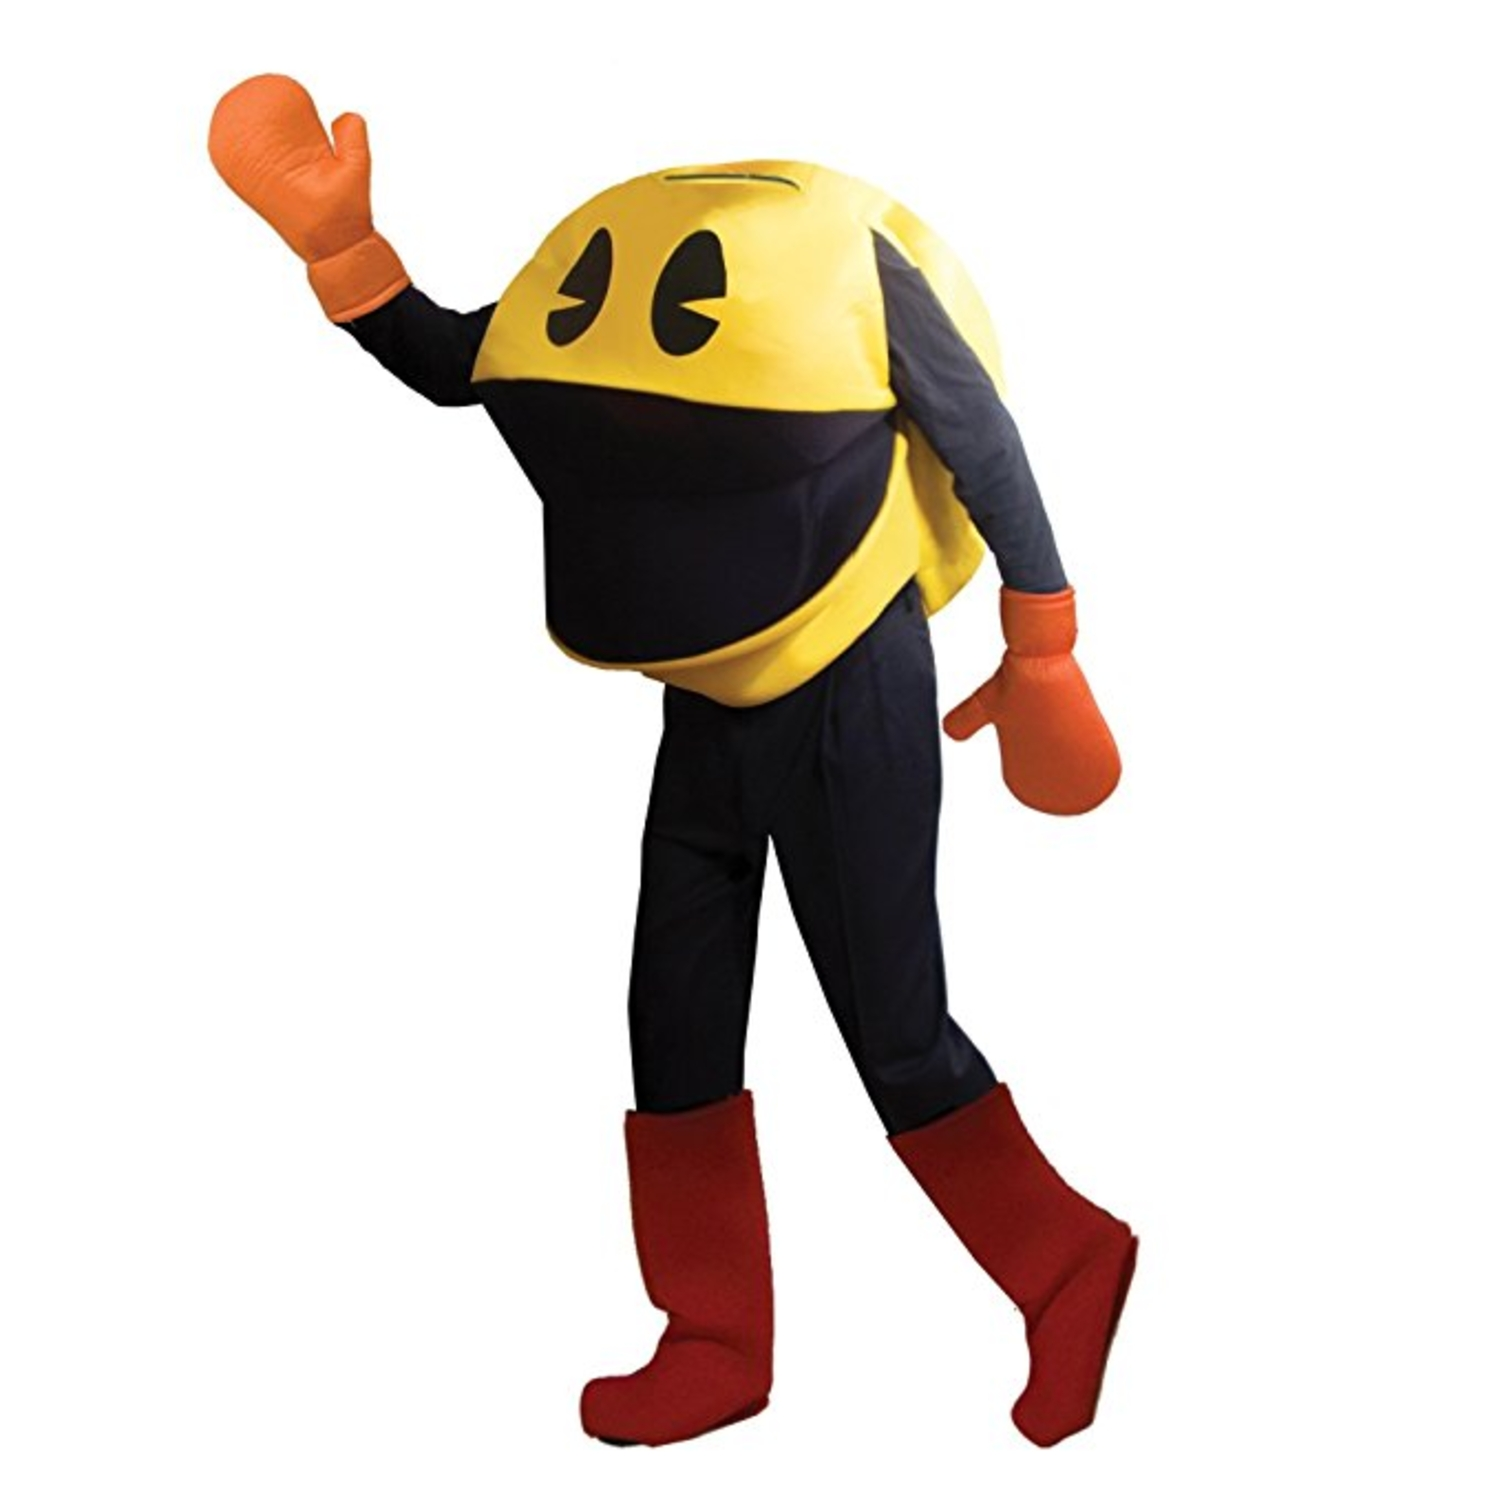 Pac-Man Halloween Costume.jpg